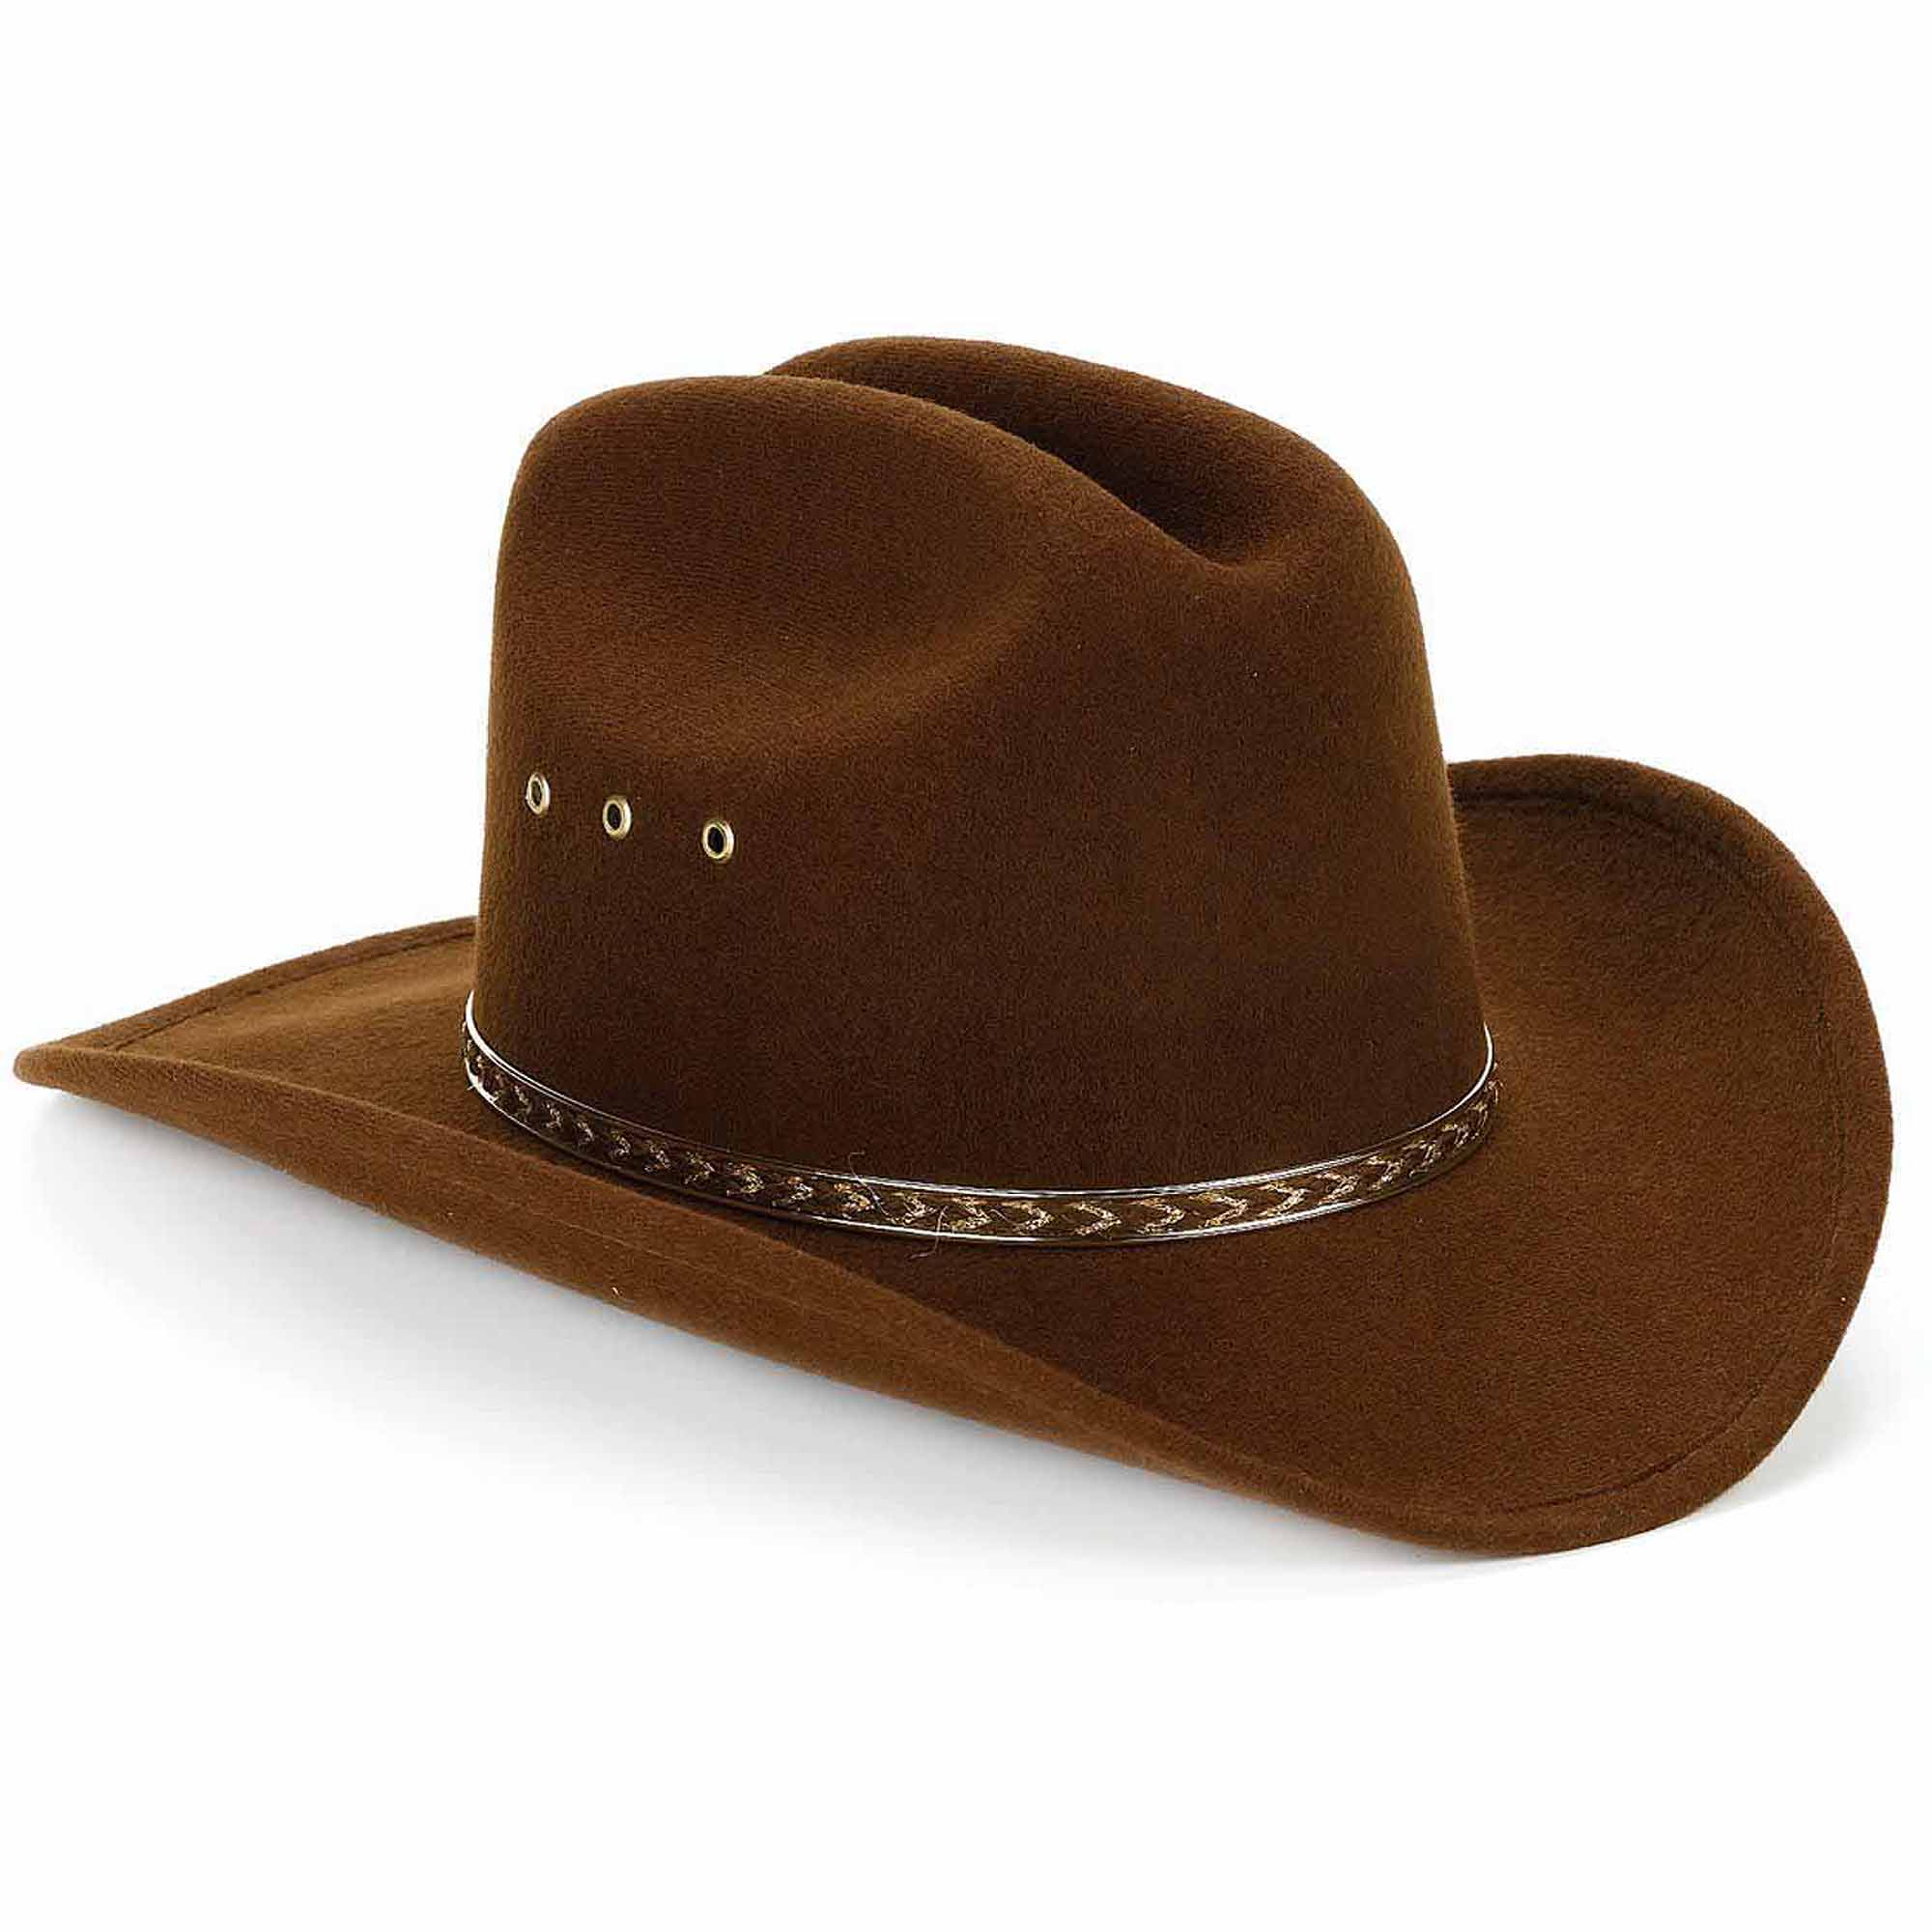 1ca029b7 Child Cowboy Hat Brown Child Halloween Costume Accessory - Walmart.com